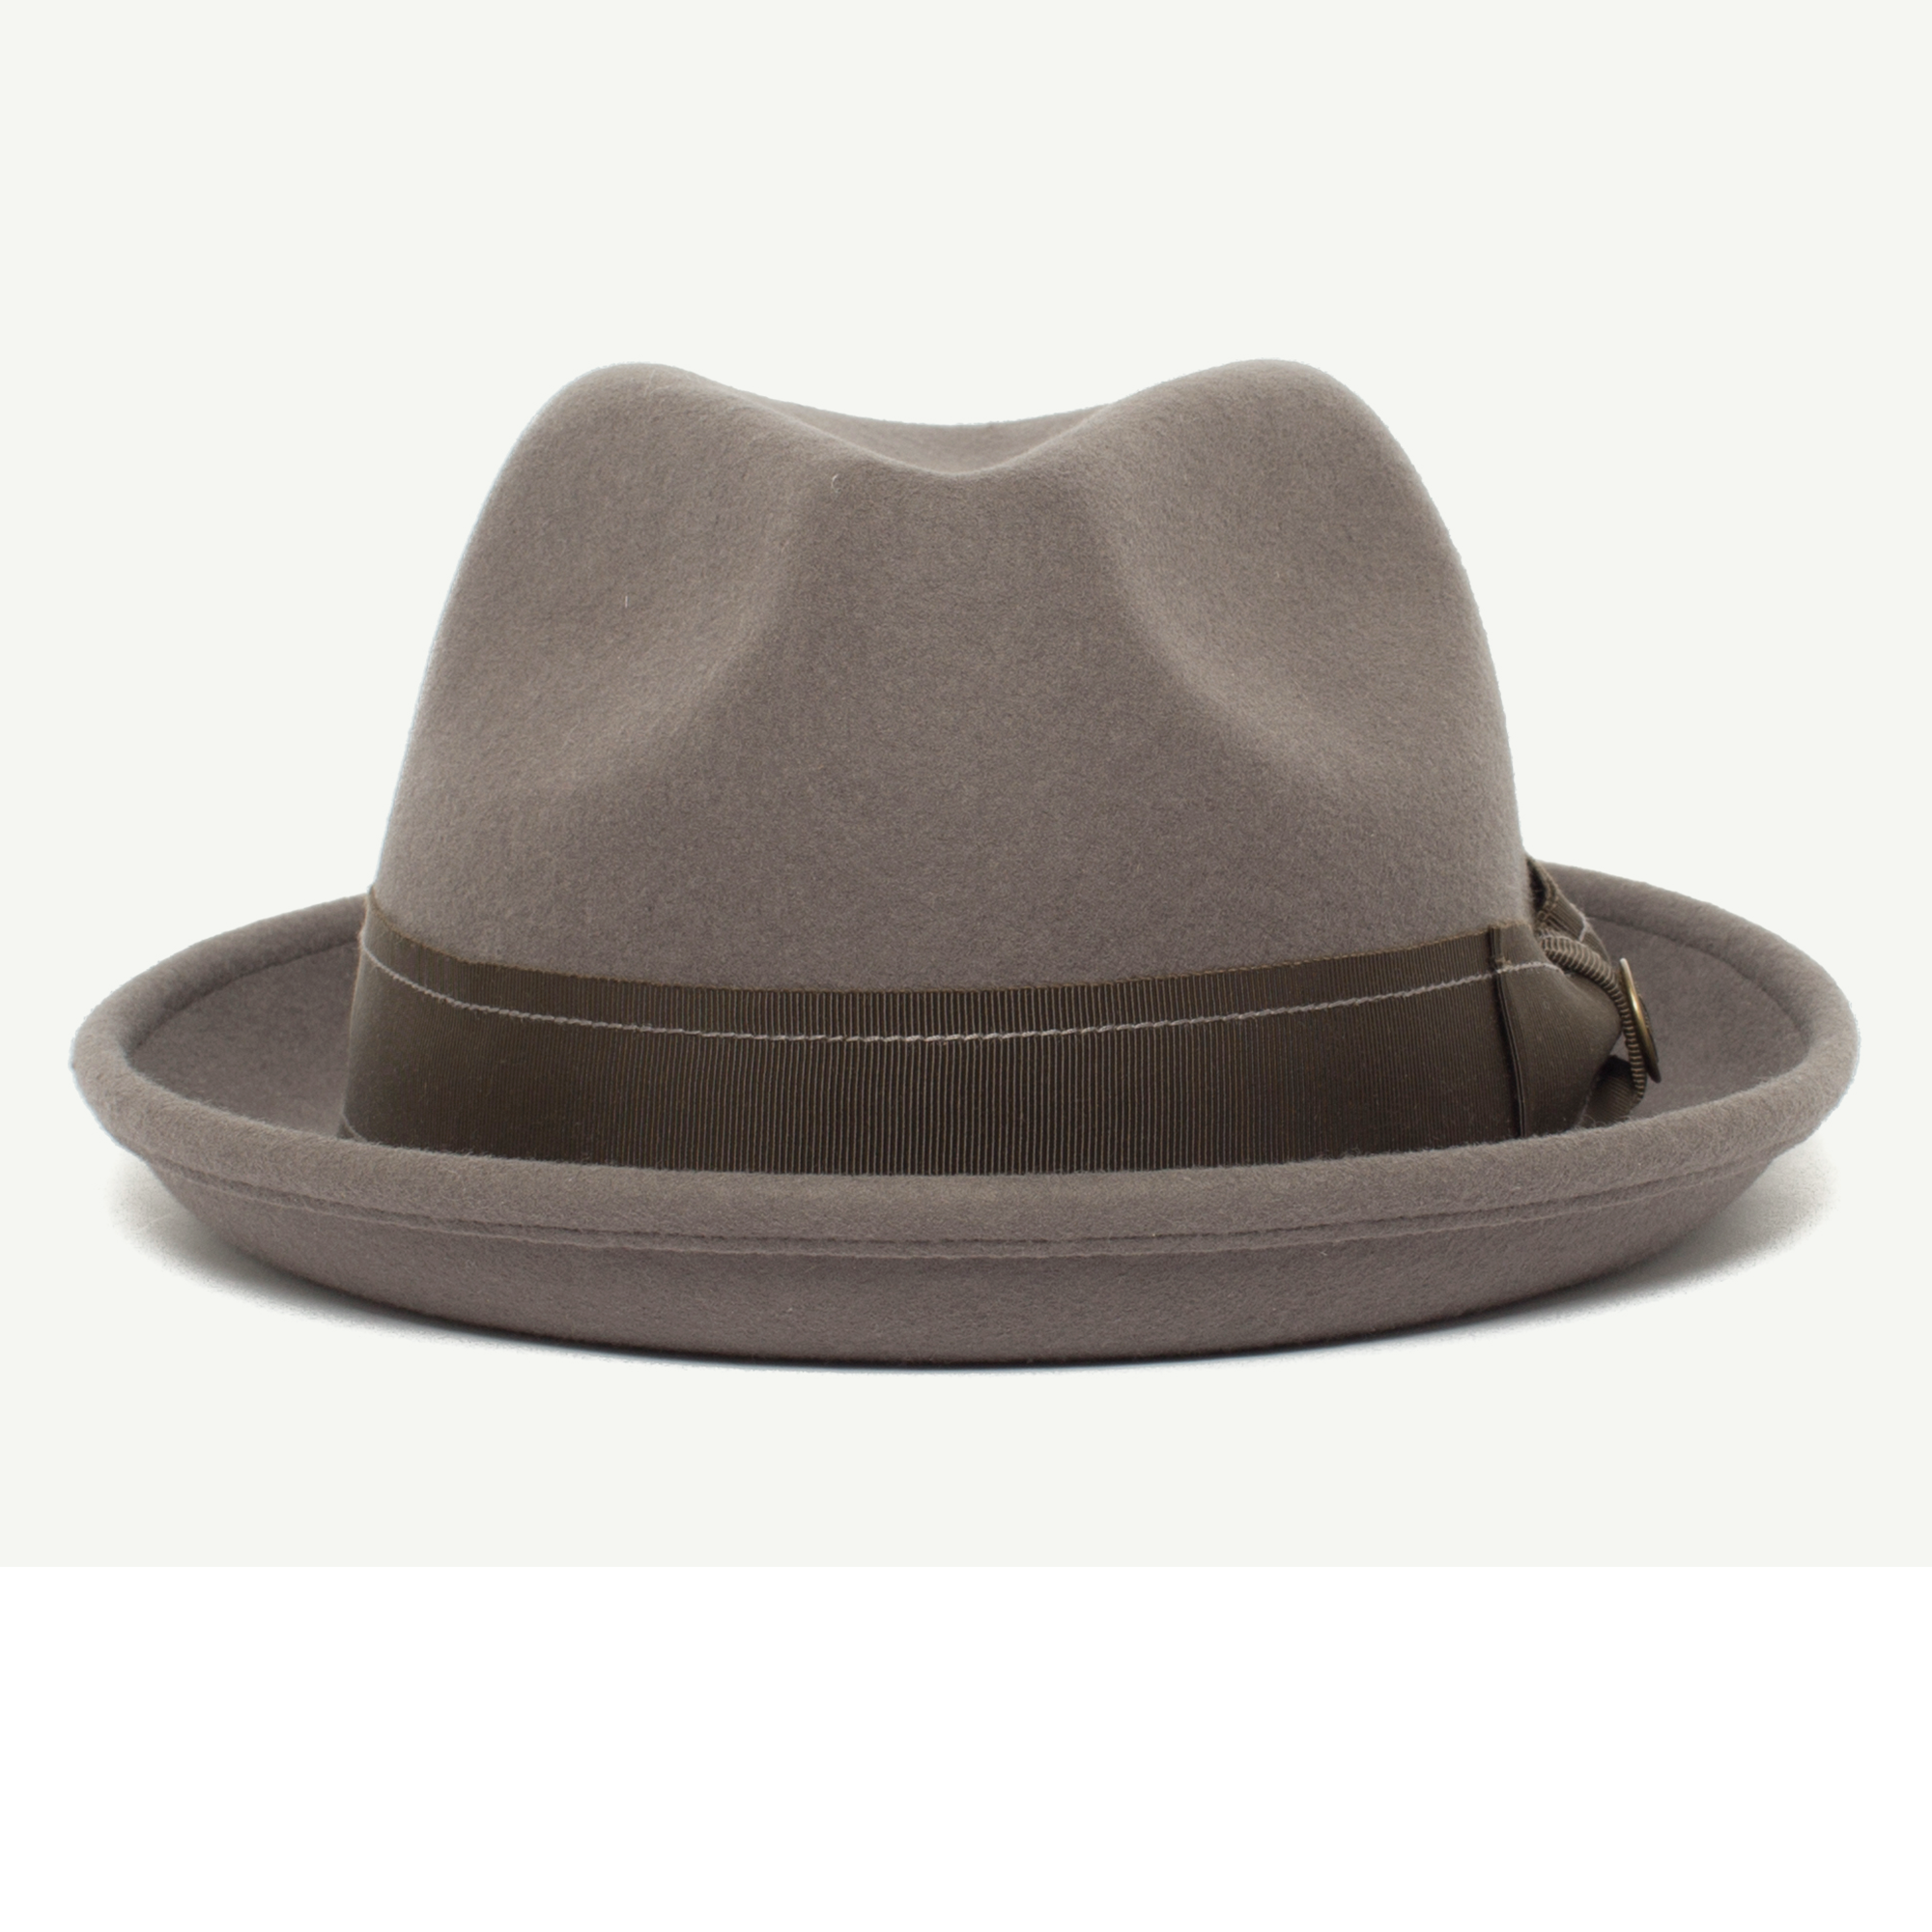 57d44d4a488bc The Event wool stingy brim fedora hat with 1 3 4